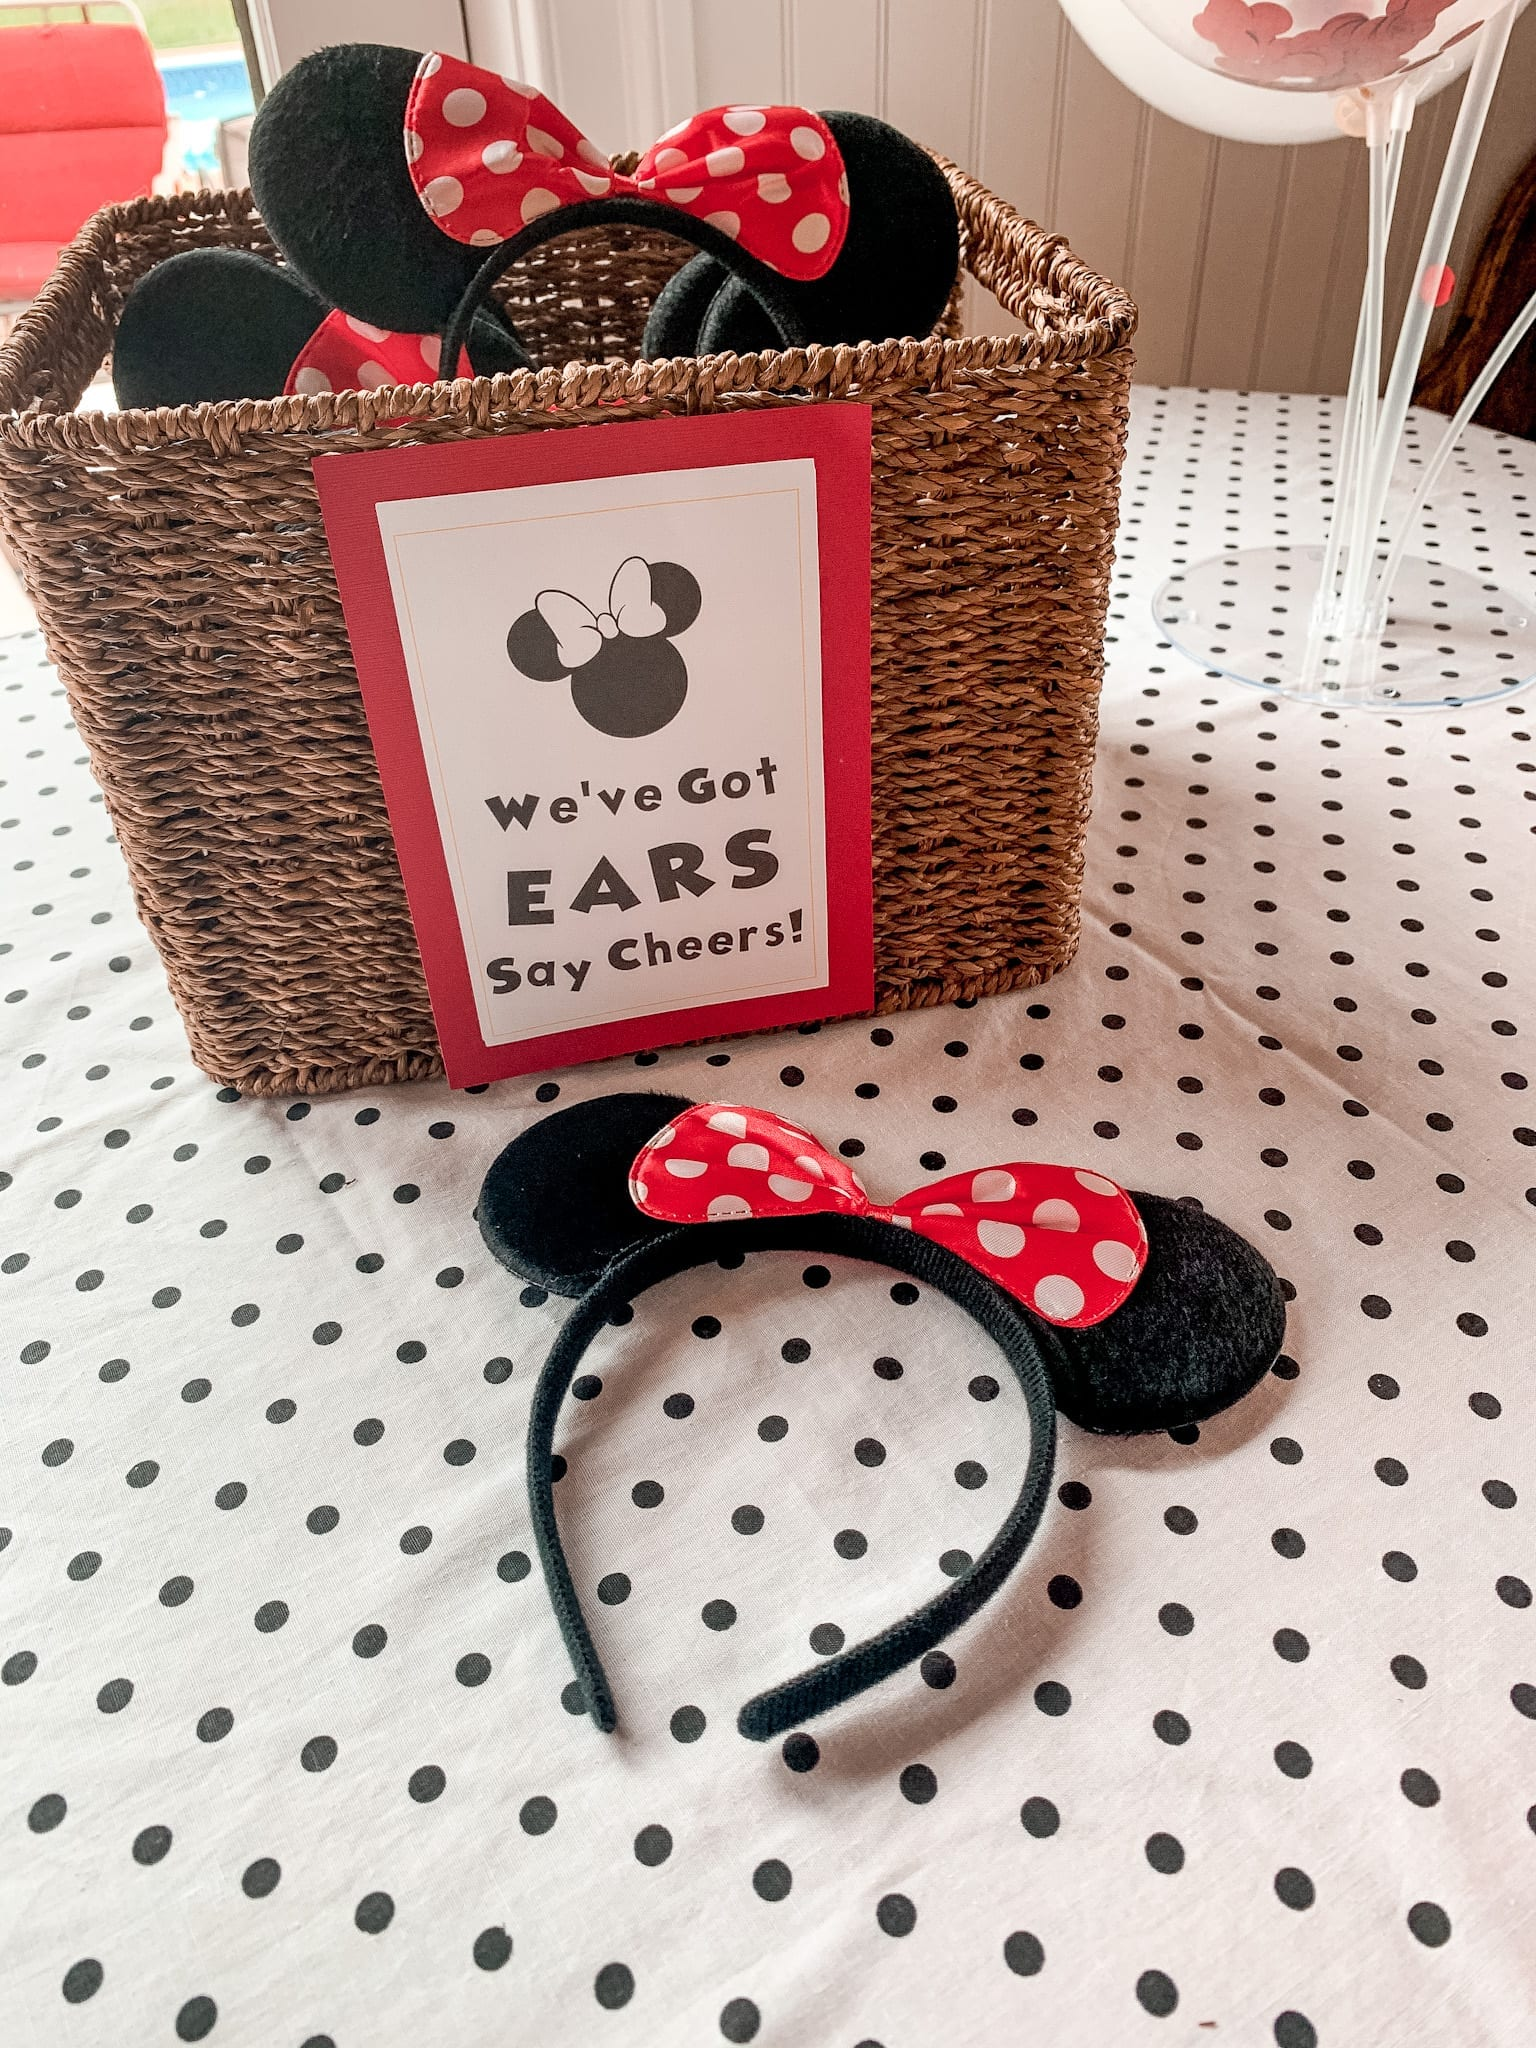 Mickey Mouse Clubhouse Party - Birthday Party Idea- Kids Party- Mickey Mouse Ears - Say Cheers